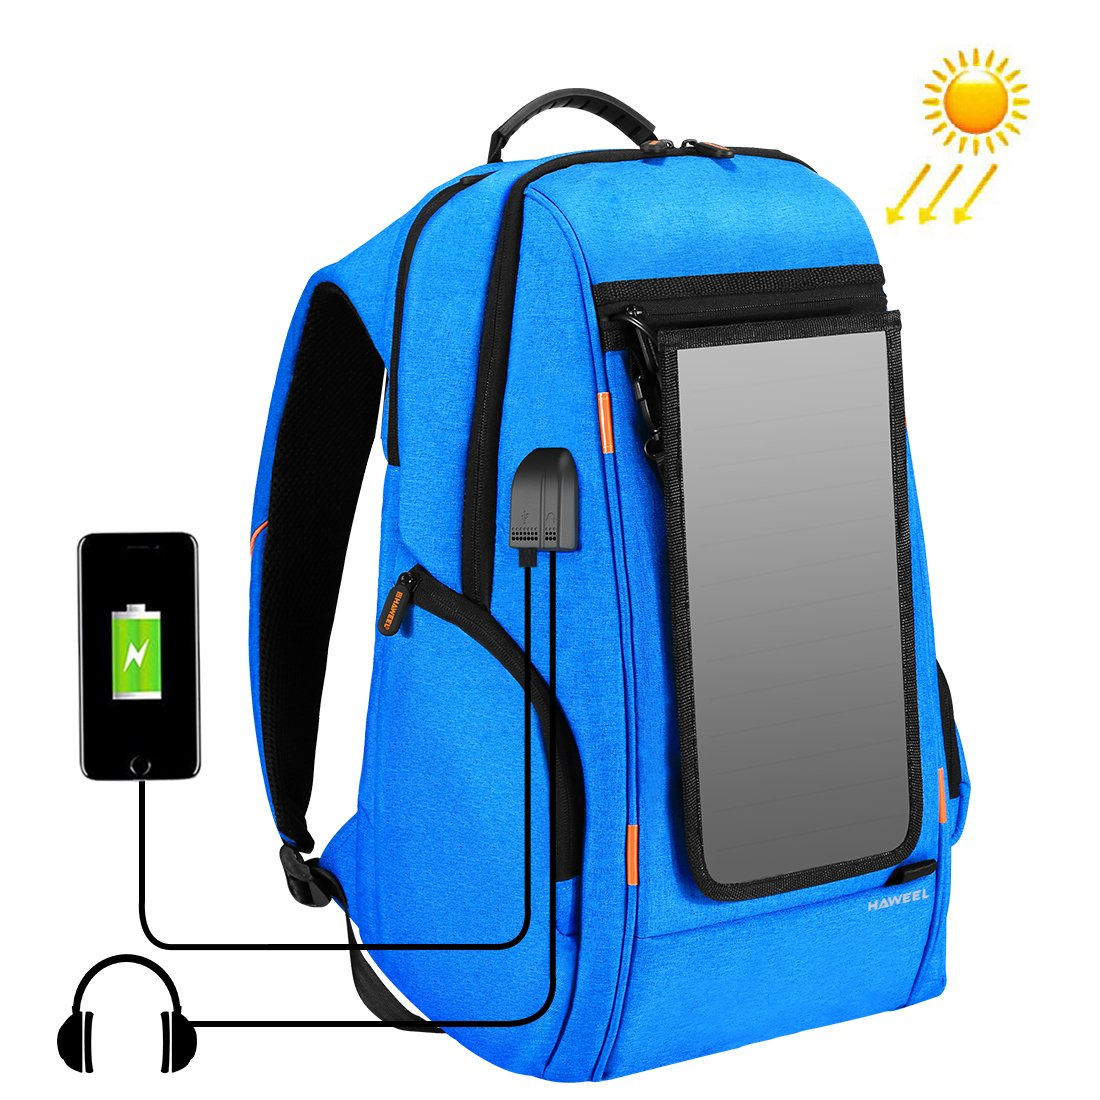 HAWEEL Outdoor Multi-function Solar Panel Power Breathable Casual Backpack Laptop Bag School Bookbag for College Travel Backpack, With USB Charging Port & Earphone Port (Blue with Solar Panel)